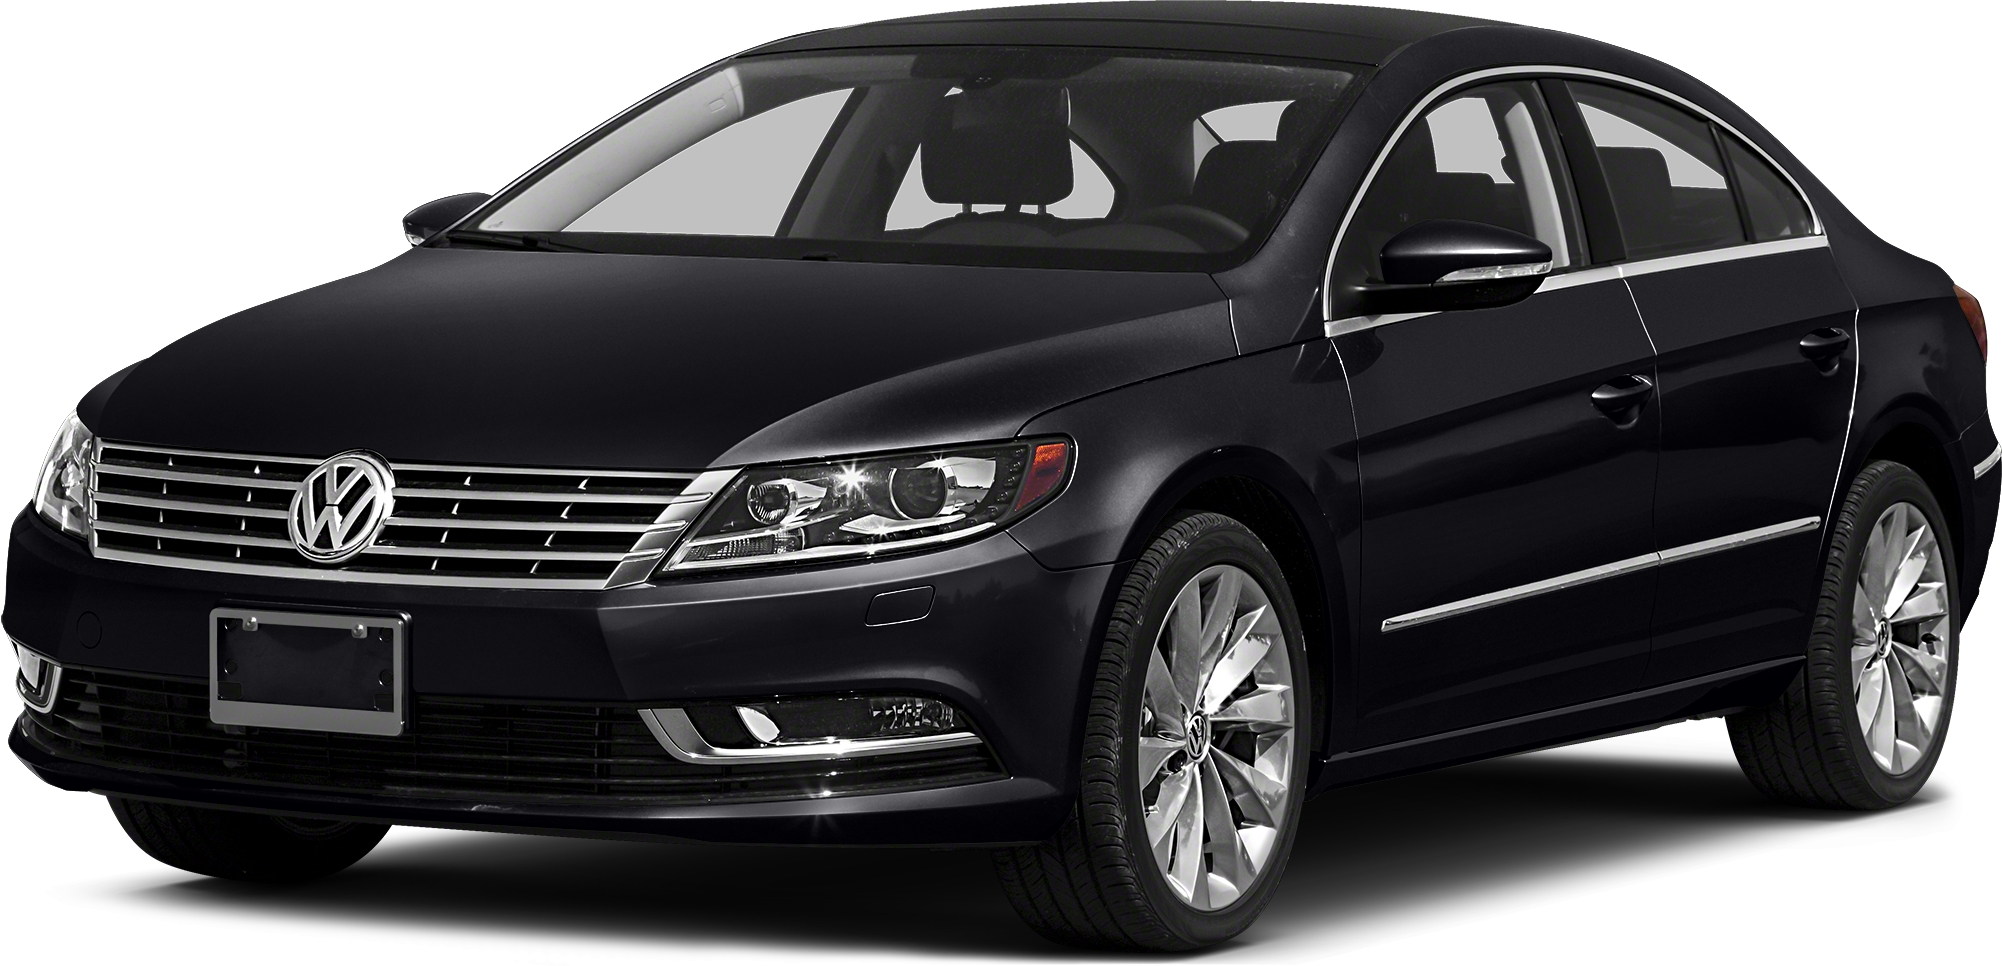 2017 volkswagen cc 2 0t sport seattle wa 15052670. Black Bedroom Furniture Sets. Home Design Ideas